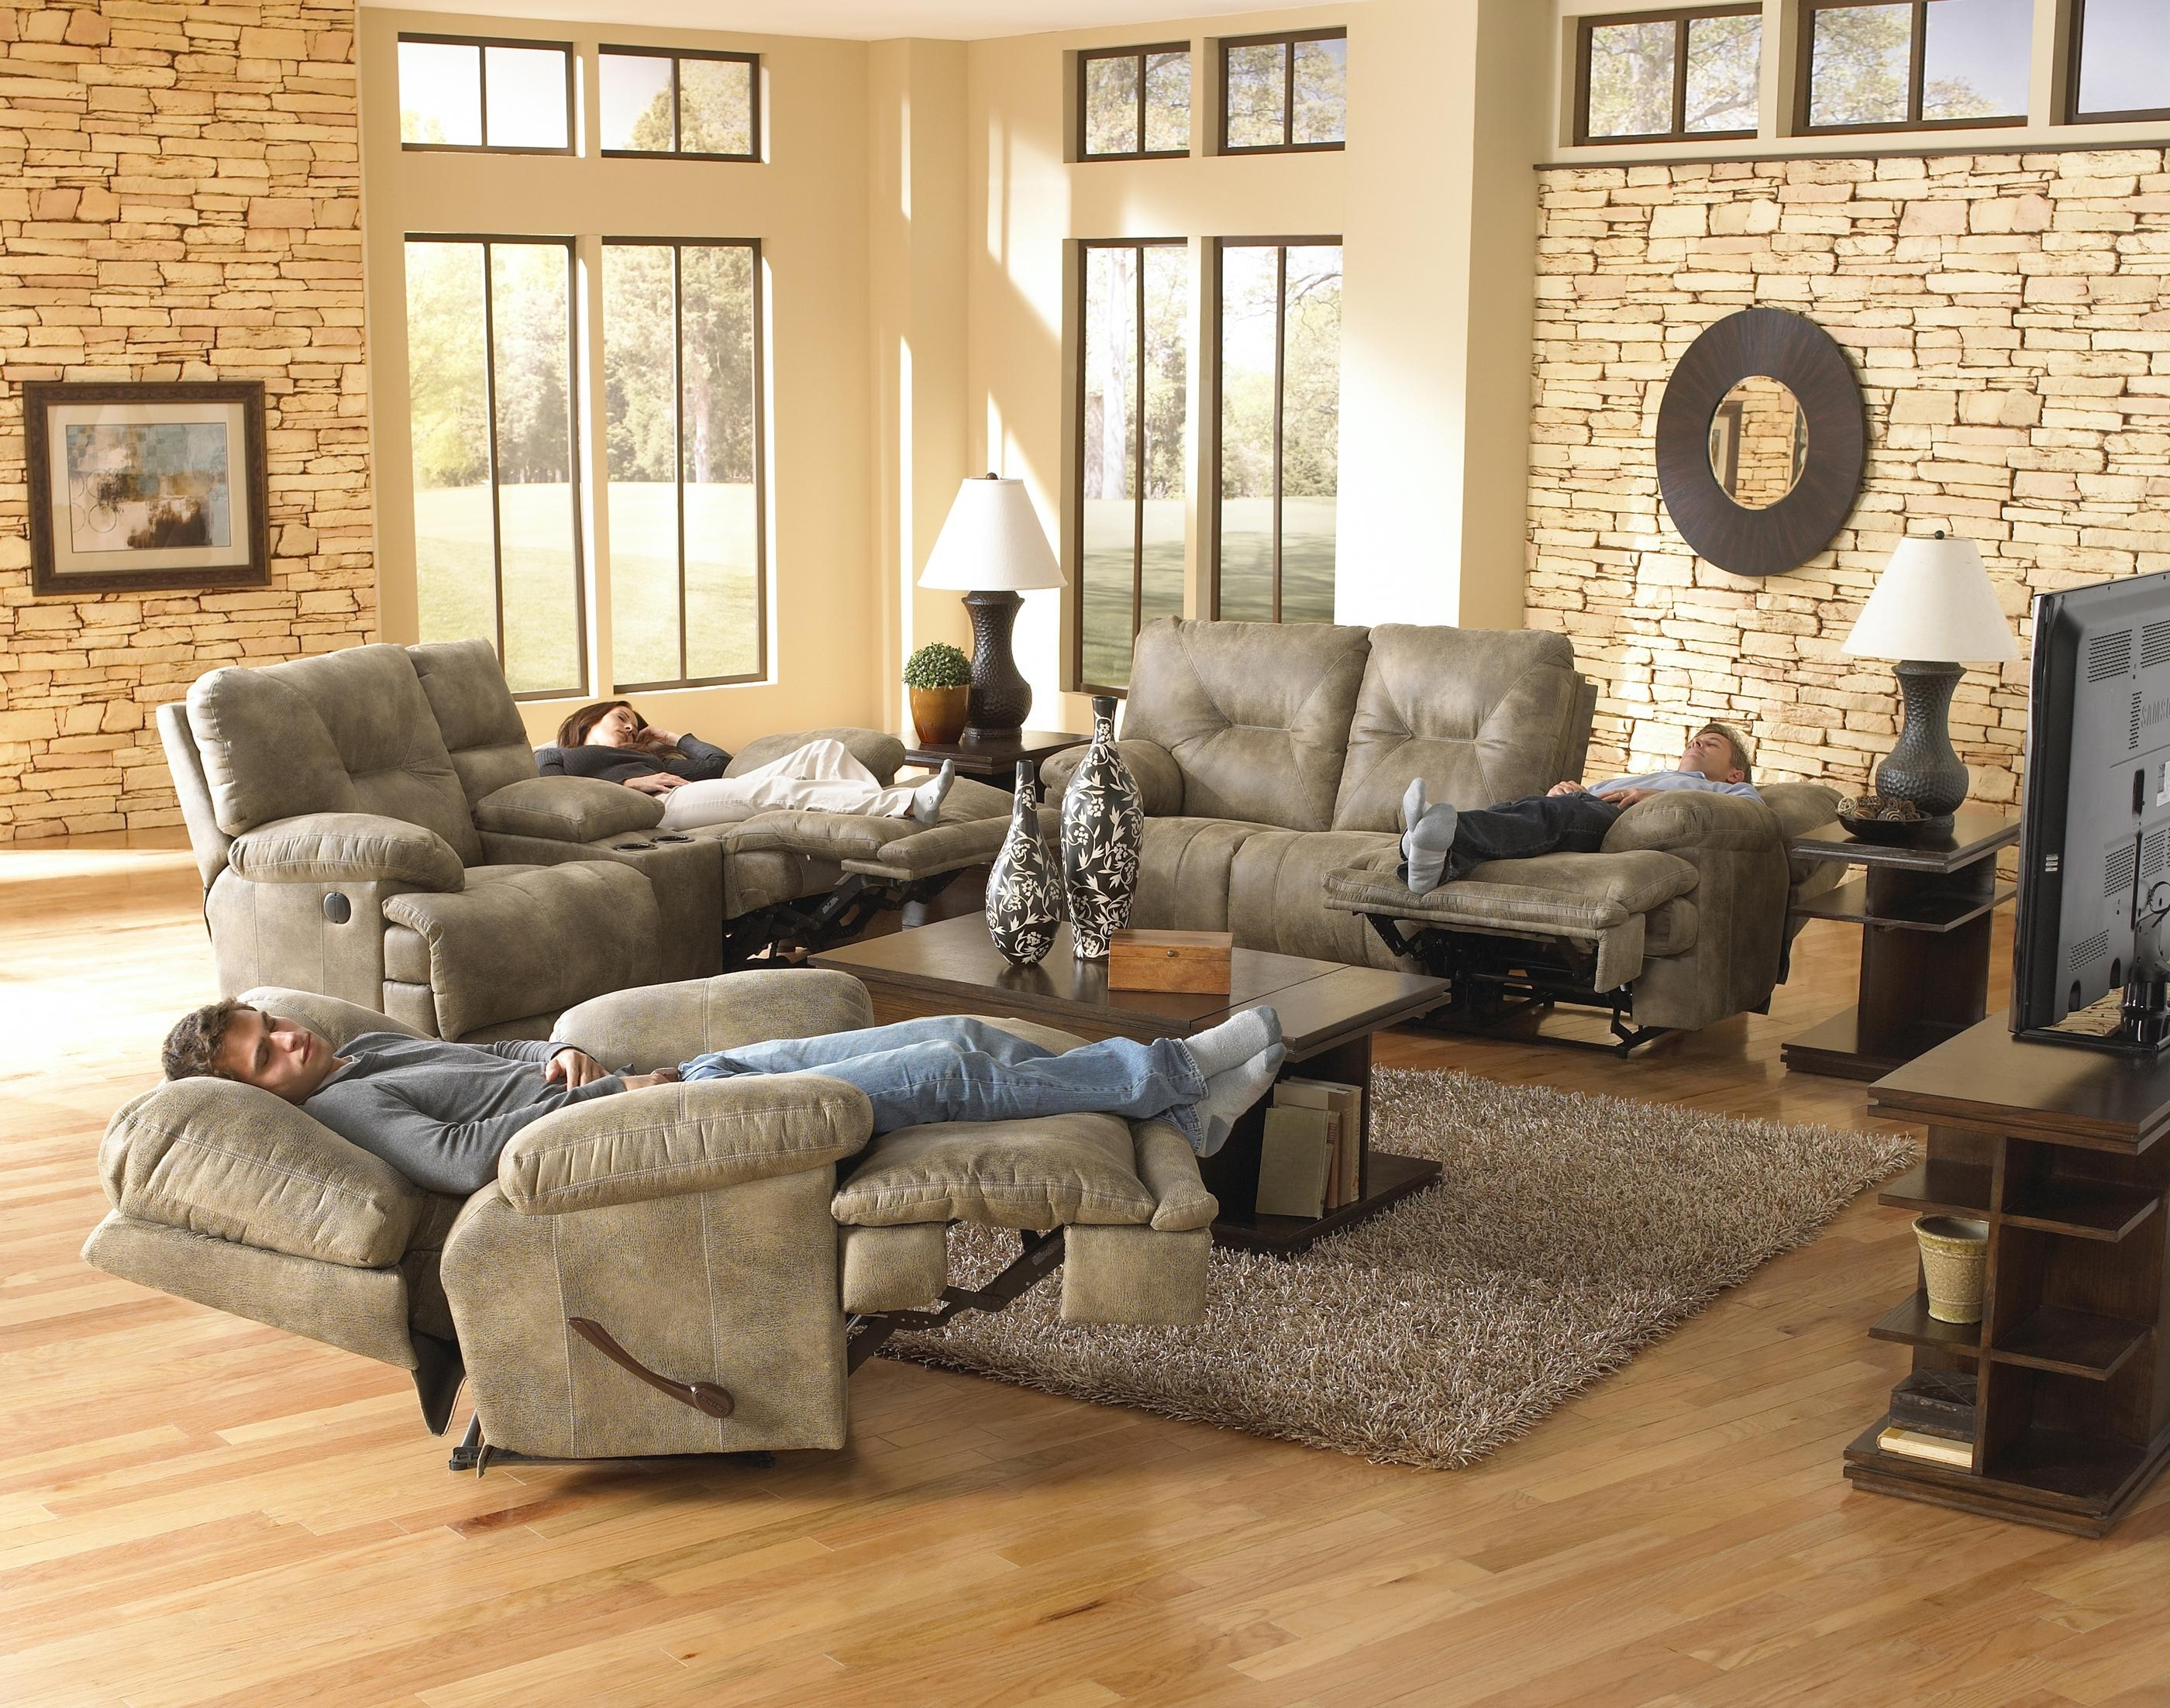 Voyager Reclining Sofa & Loveseatcatnapper throughout Catnapper Recliner Sofas